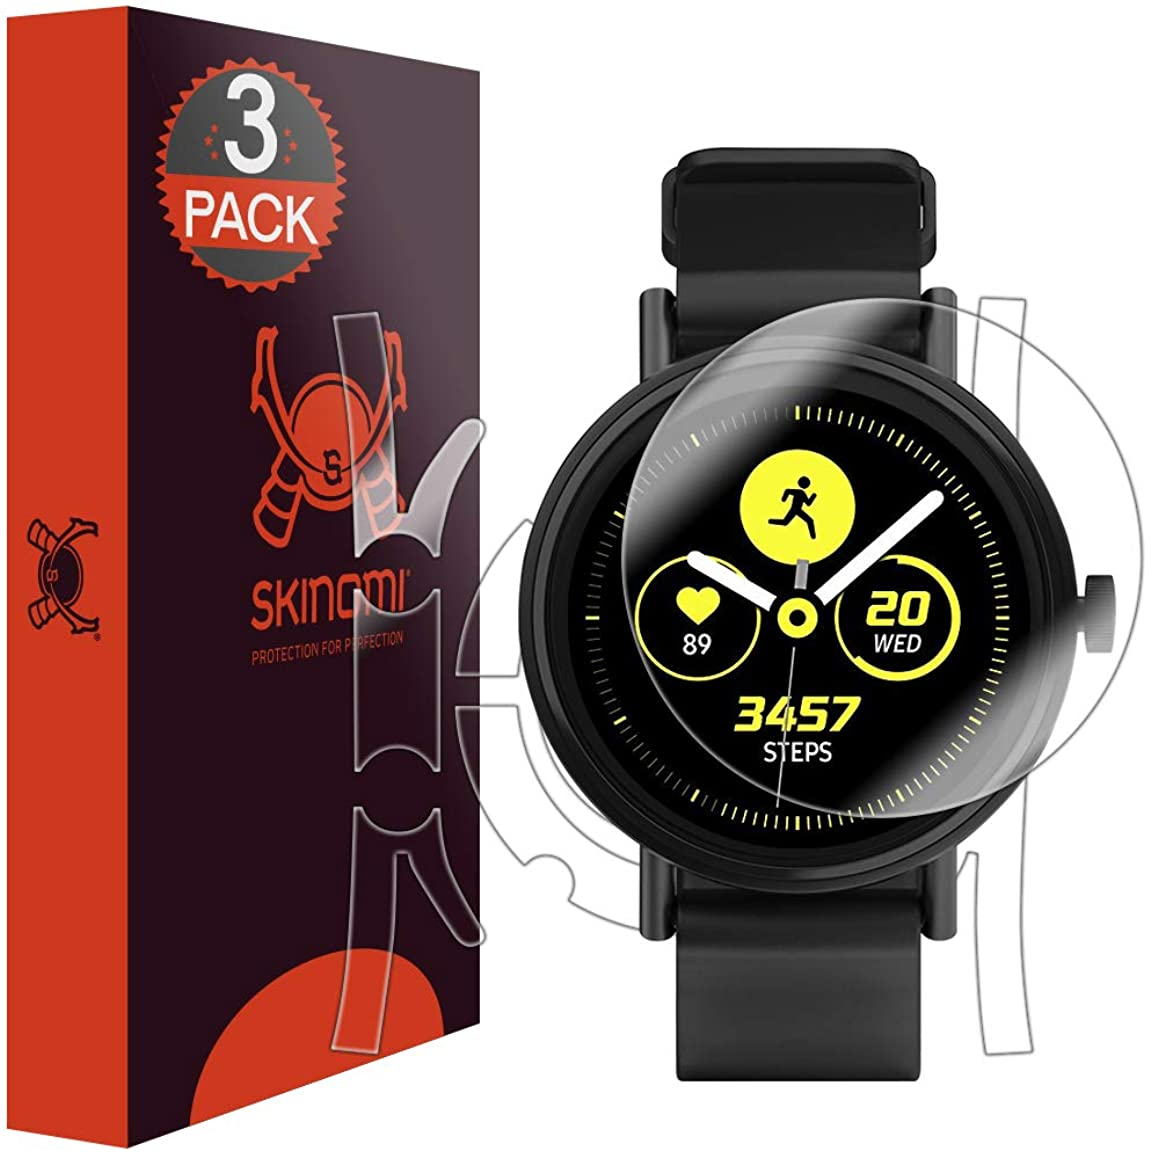 Skinomi Samsung Galaxy Watch Active Screen Protector + Full Body (40mm)[3-Pack], TechSkin Full Coverage Skin + Screen Protector for Samsung Galaxy Watch Active Front & Back Clear HD Film